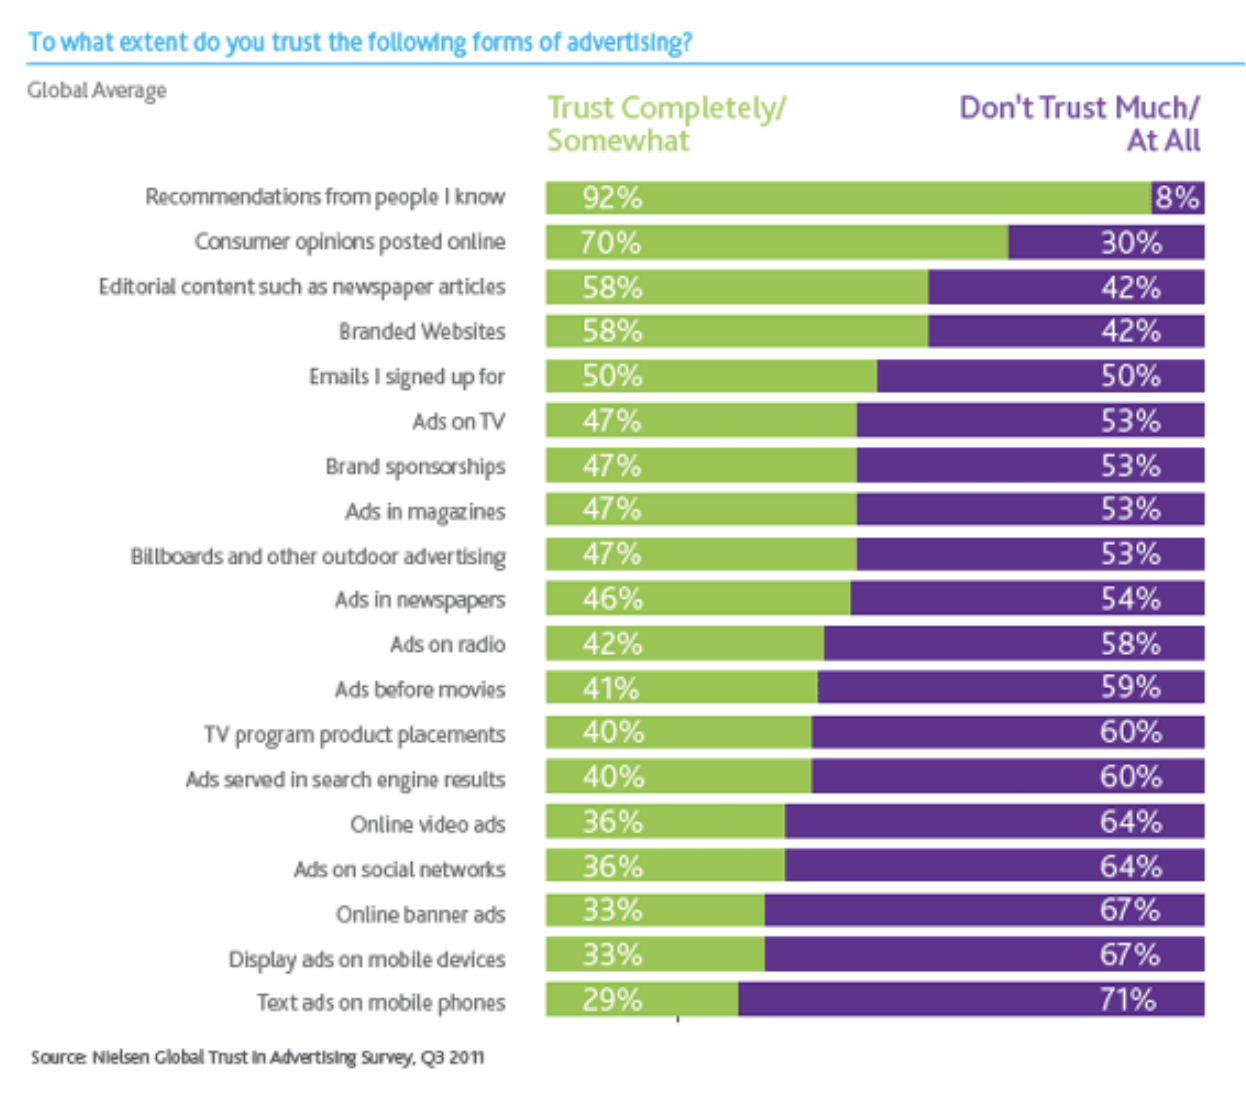 92% of consumers trust recommendations from the people they know.